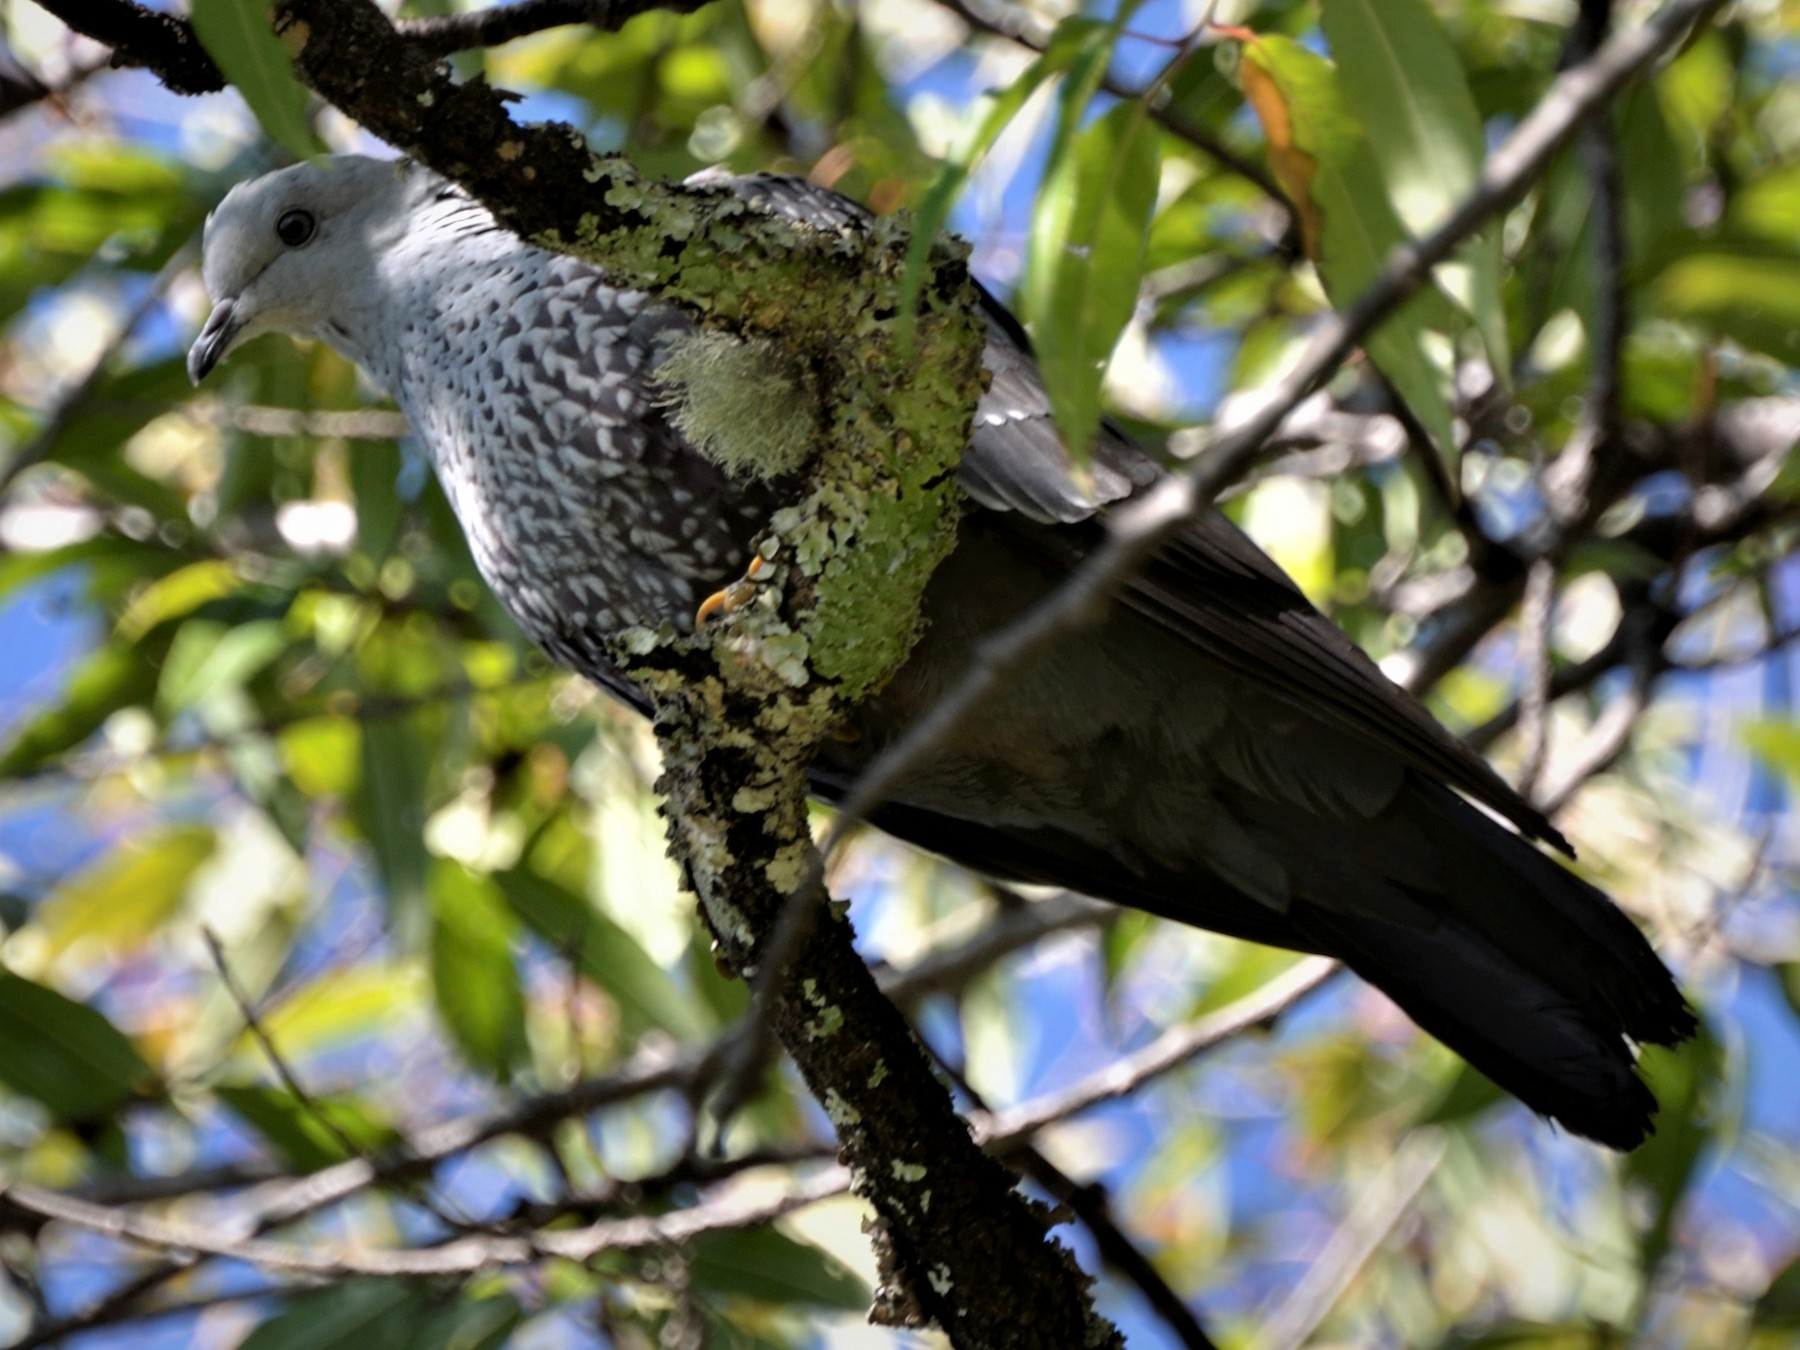 Speckled Wood-Pigeon - Hathan Chaudhary